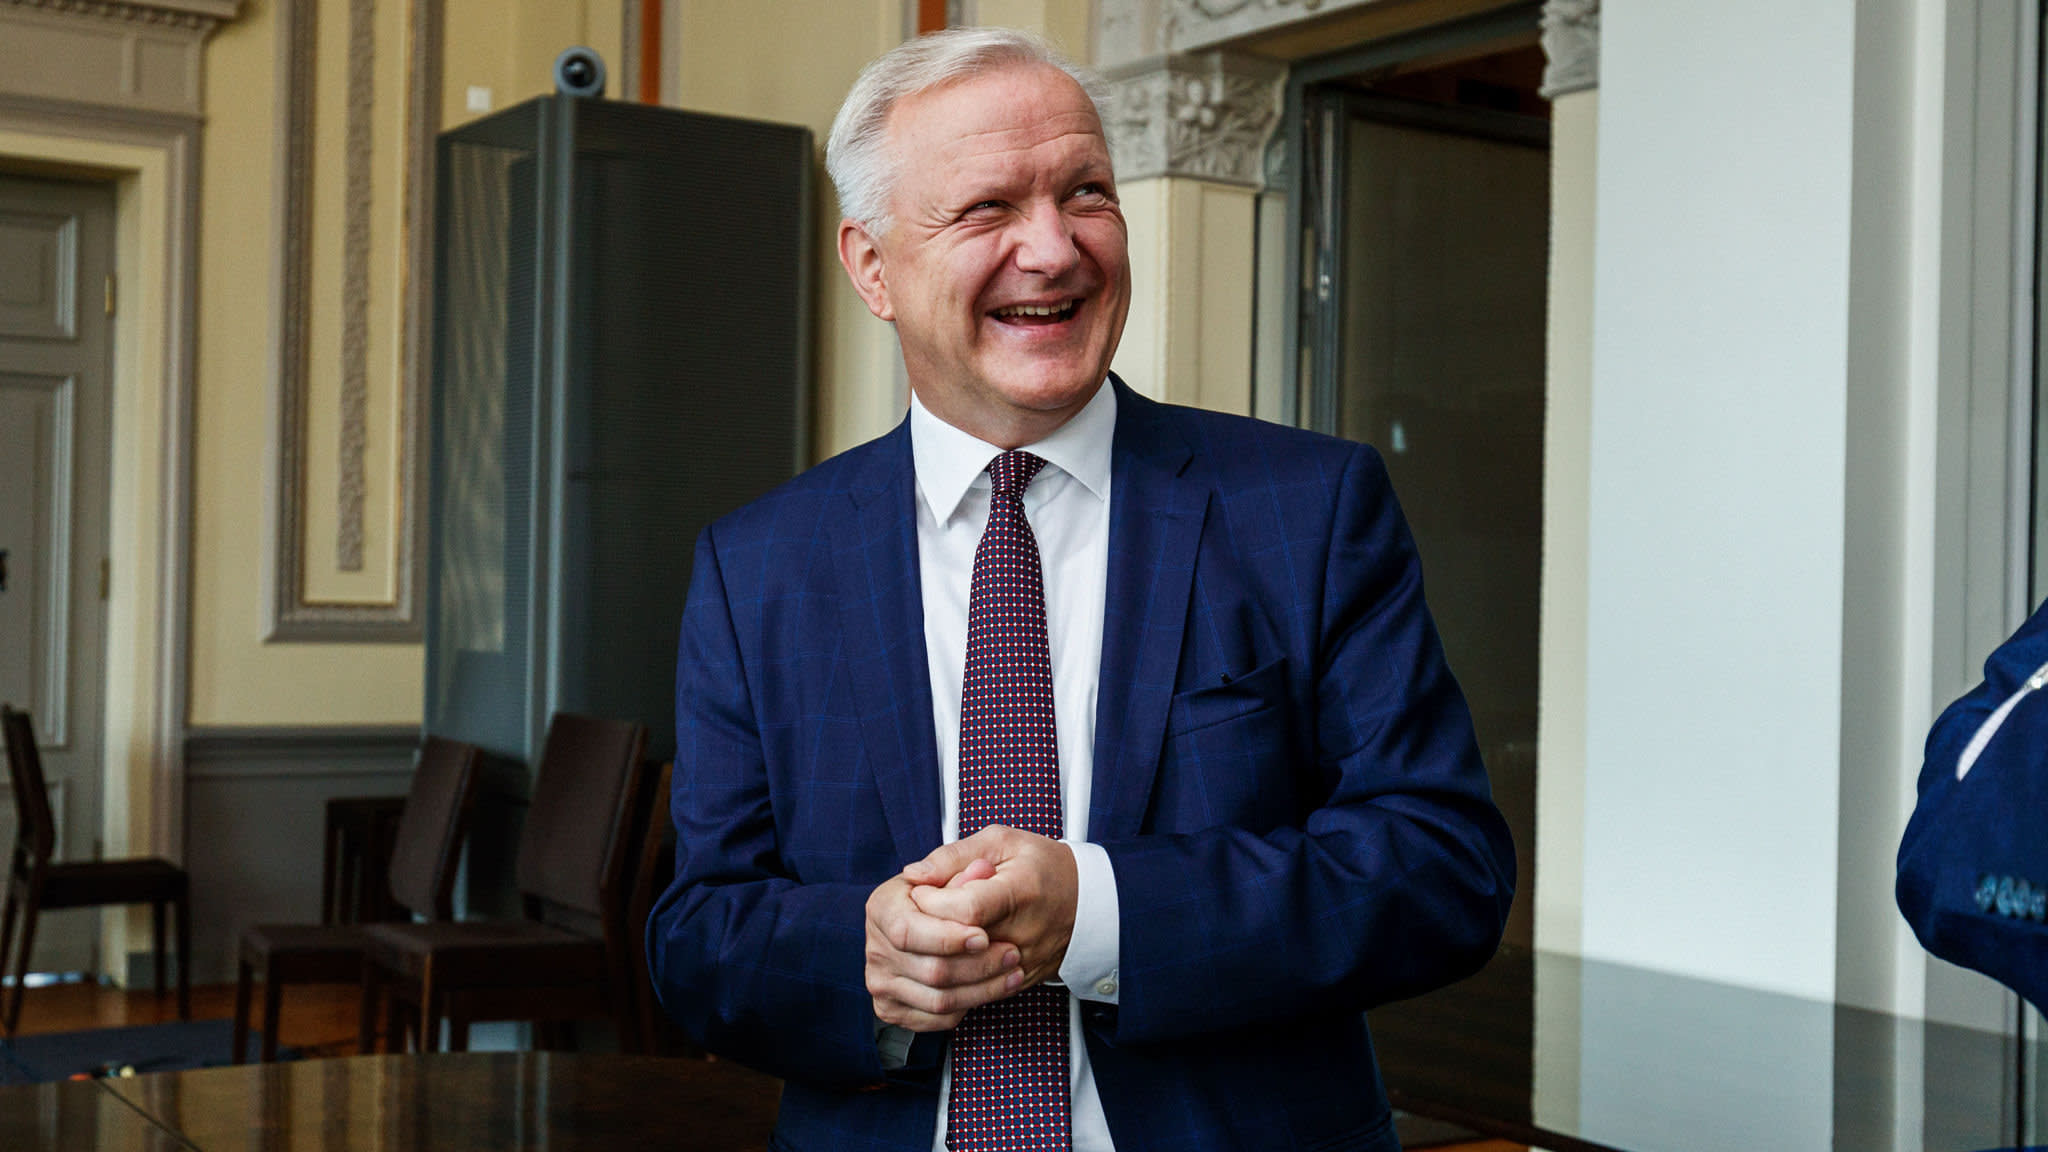 Finland's Olli Rehn brandishes credentials as ECB vacancy looms